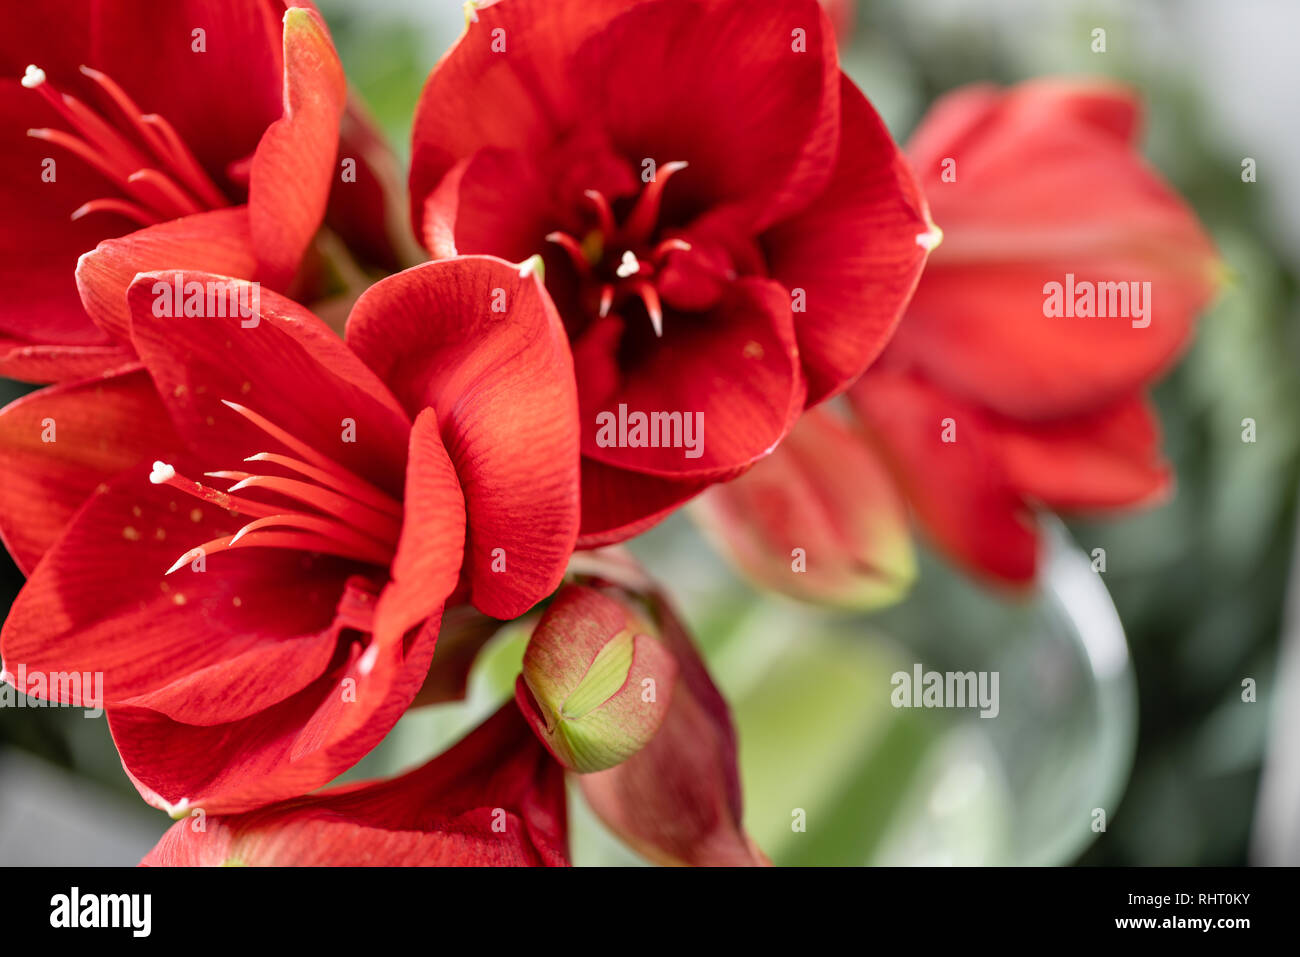 Close up of a red amaryllis. Amaryllis flowers in Glass vase. Flower shop concept, Wallpaper Stock Photo